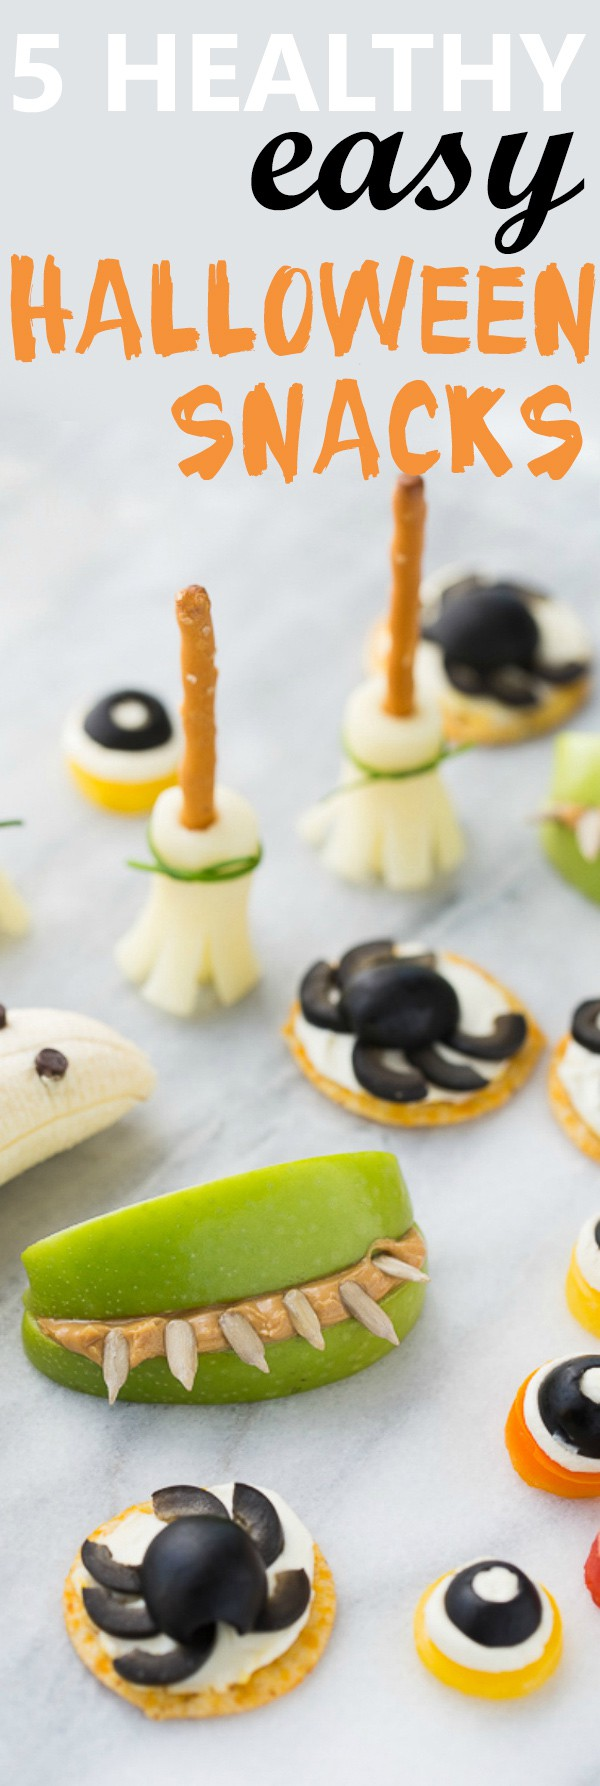 5 Easy Healthy Halloween Snacks! So fun for kids and class parties. Made with ingredients you already have and easily gluten-free!